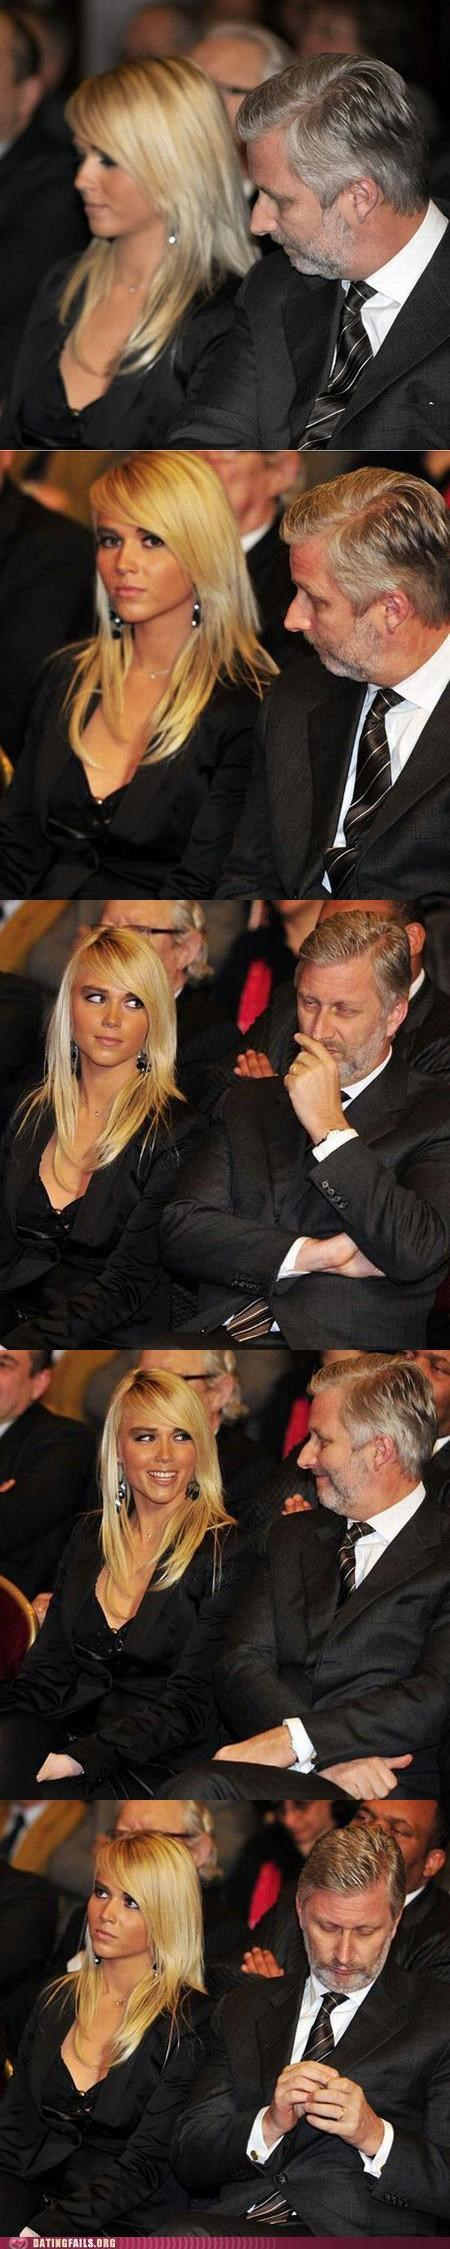 cleavage ogling prince laurent skeeze Staring We Are Dating - 5303702272